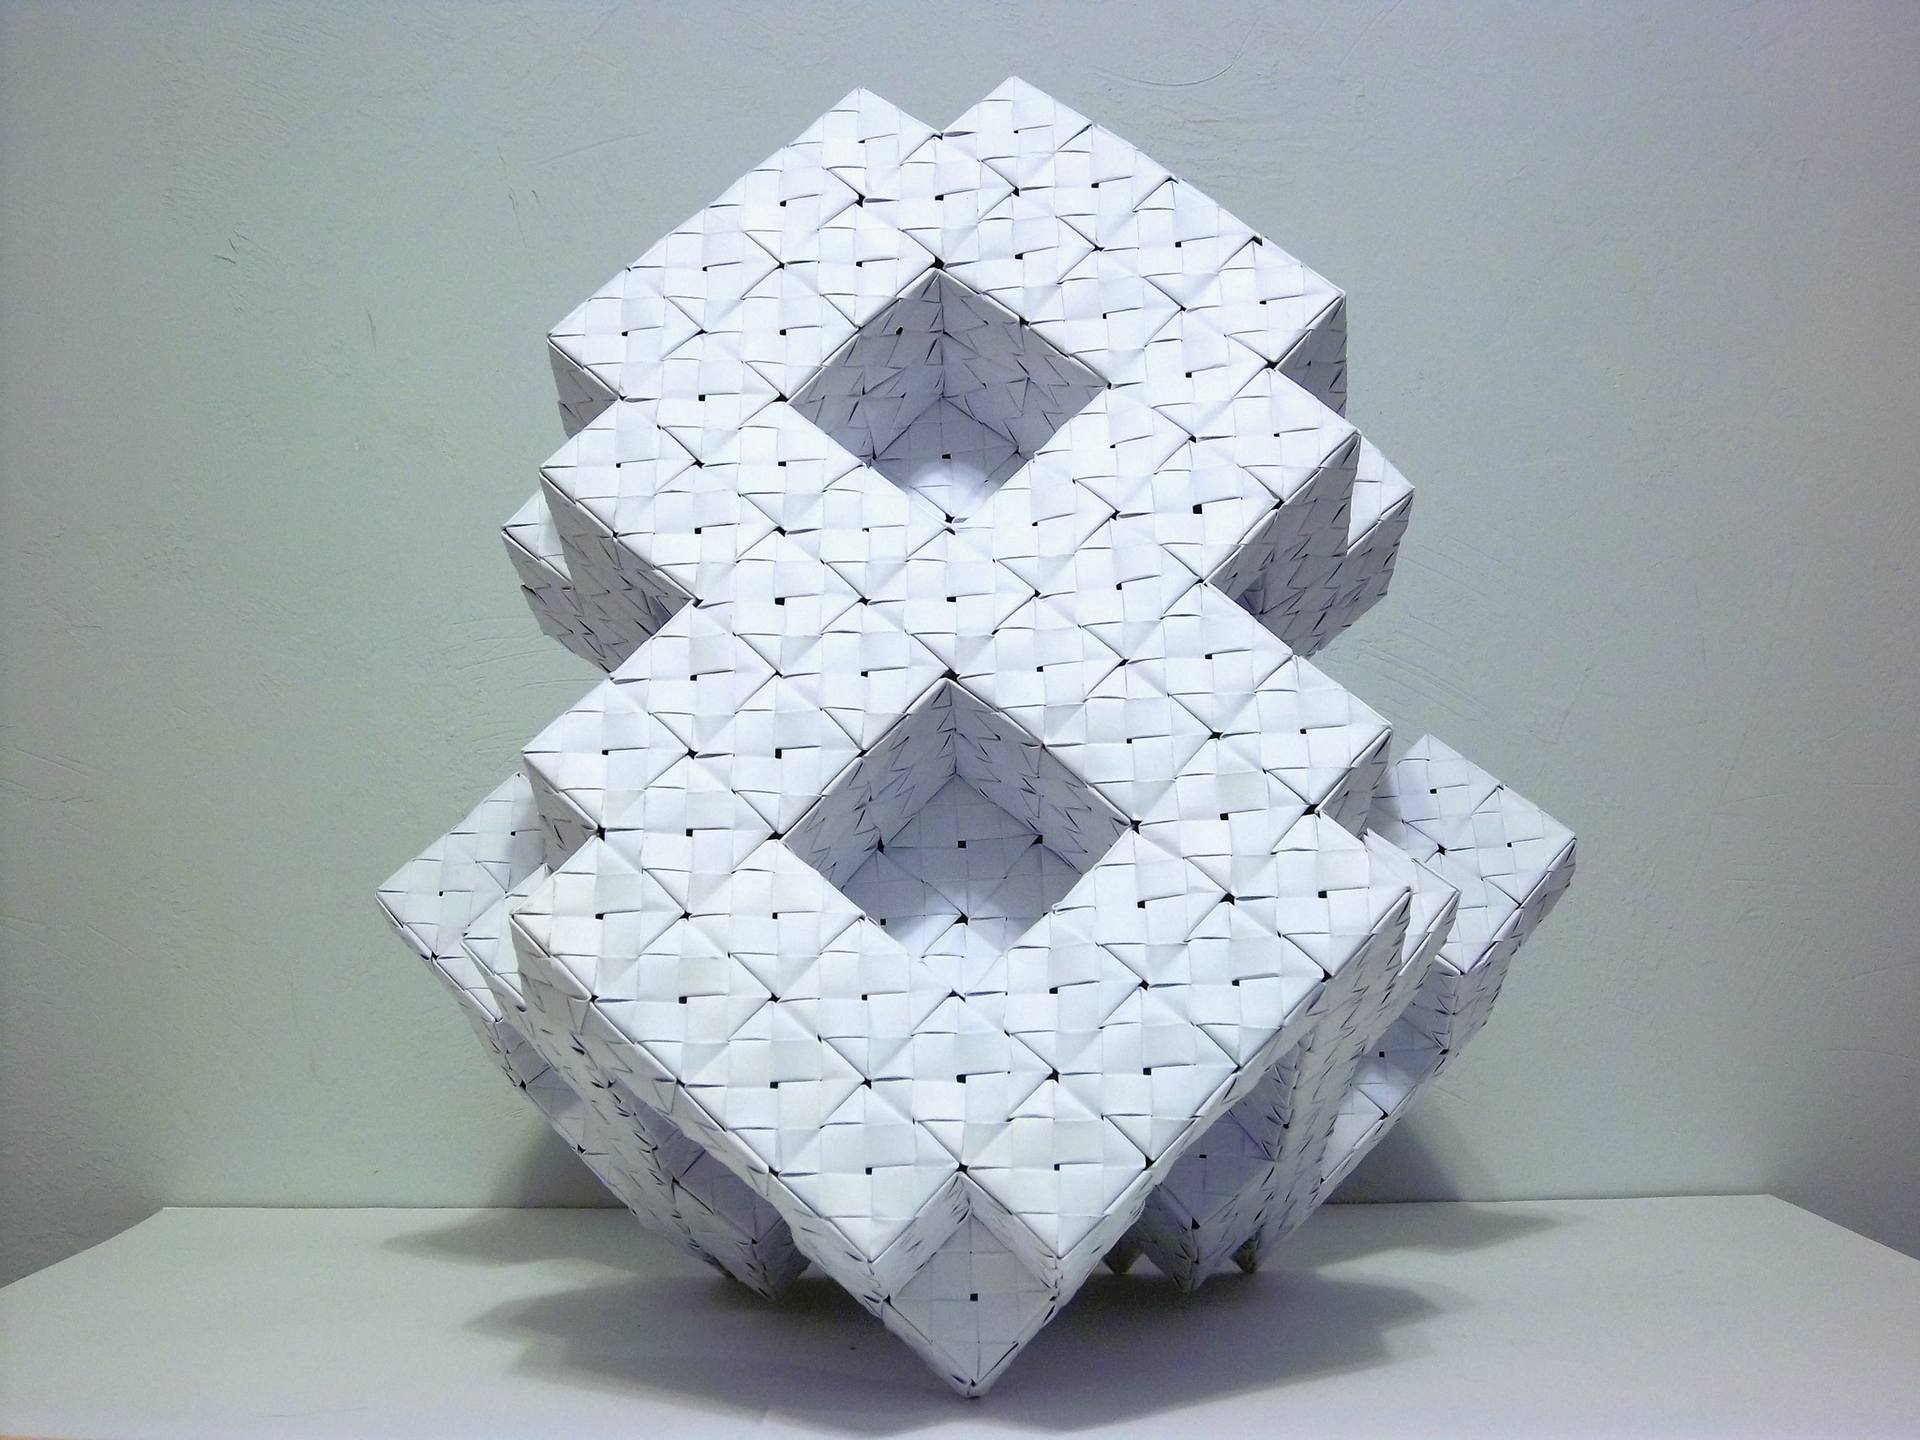 Saatchi Art 9x9 Cubic Grid In Origami Sculpture By Vance Houston